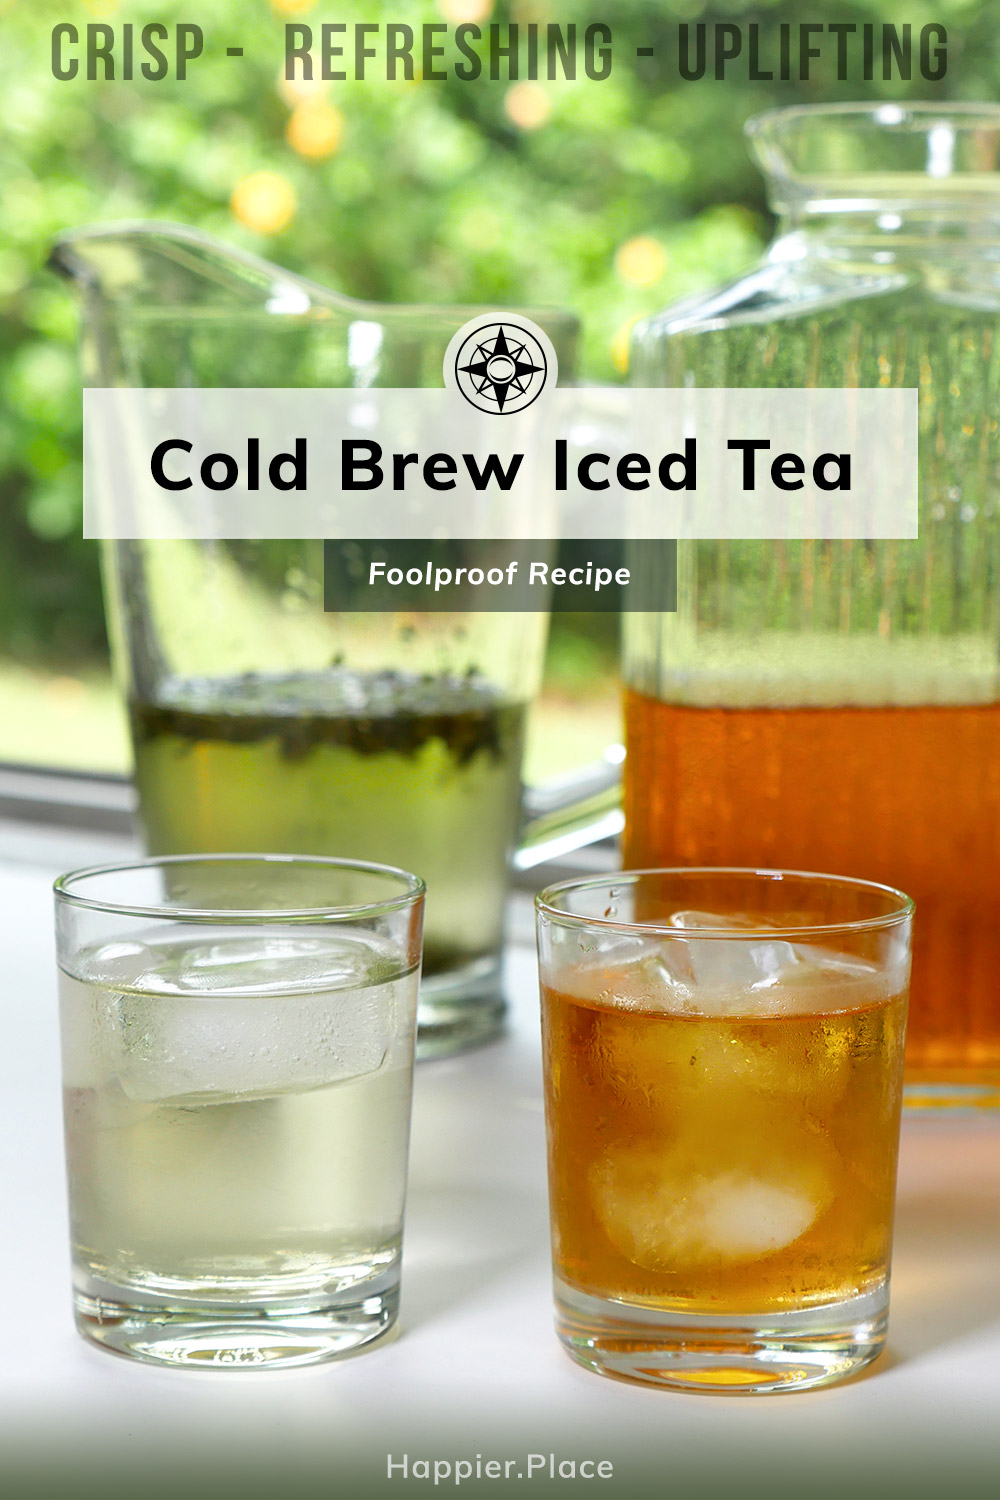 Foolproof recipe for green and black cold brew iced tea. Crisp, refreshing, uplifting and never bitter.